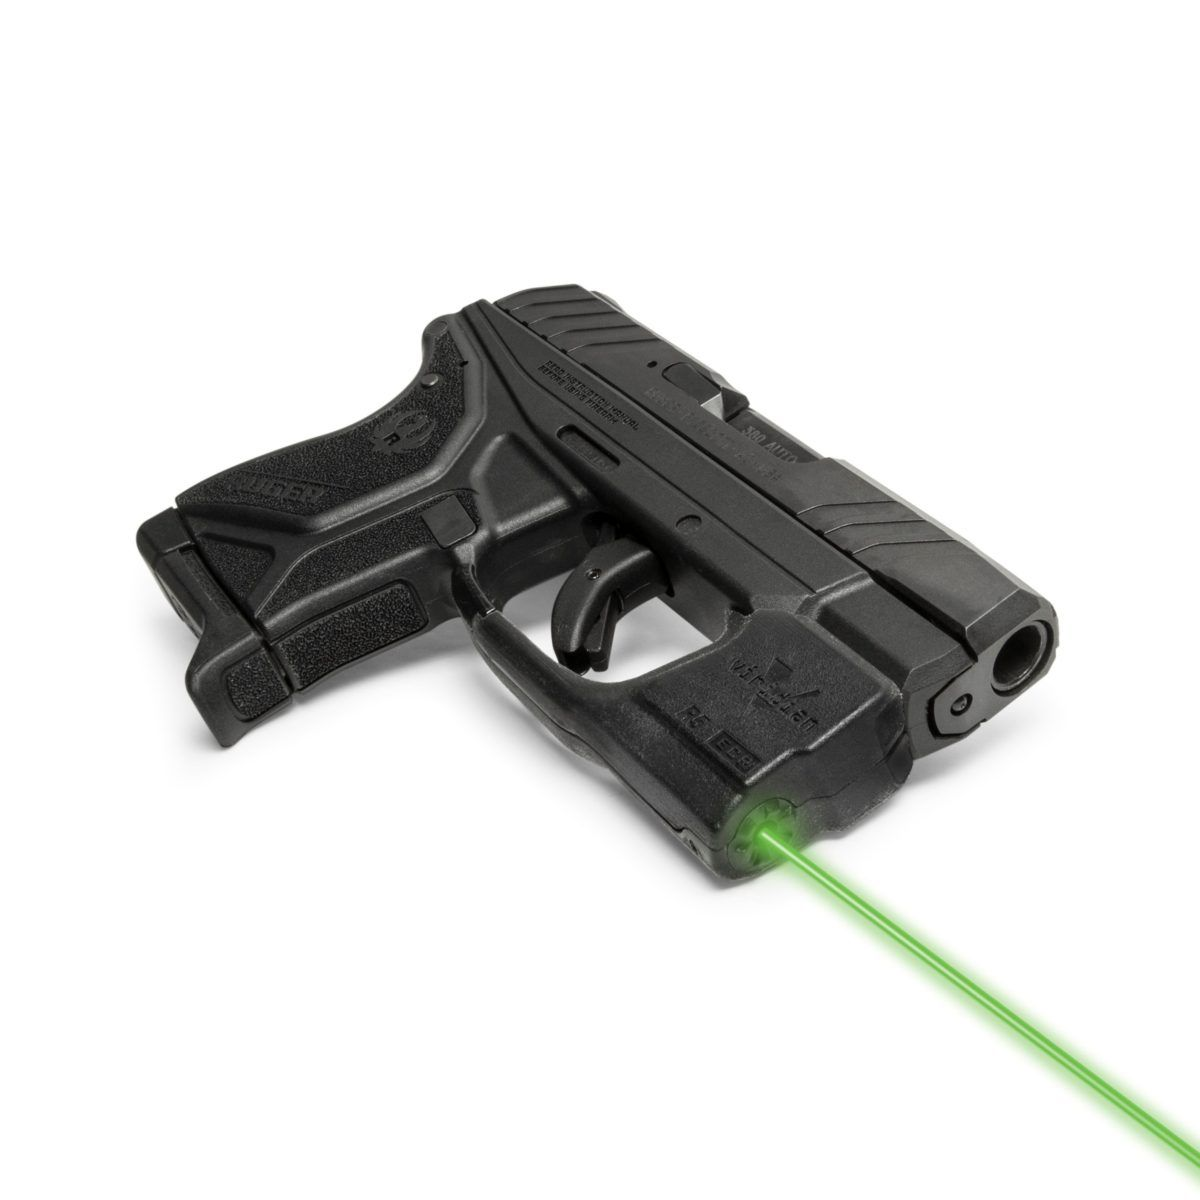 Viridian Green Laser Sight for Ruger LCP II | RUGER LCP